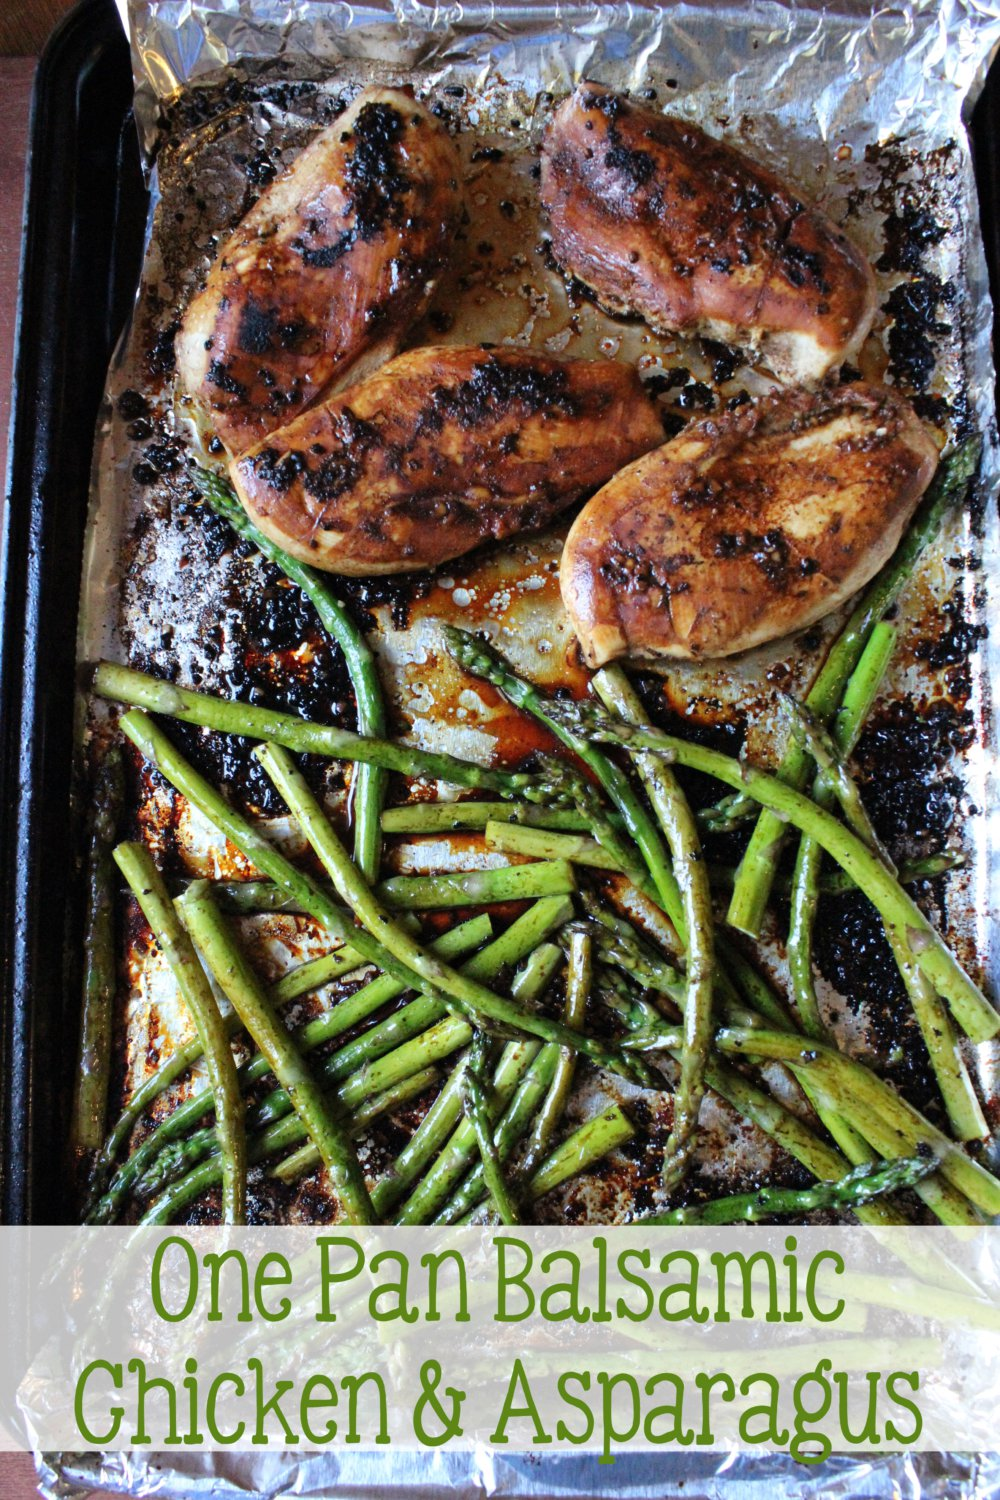 One Pan Balsamic Chicken and Asparagus